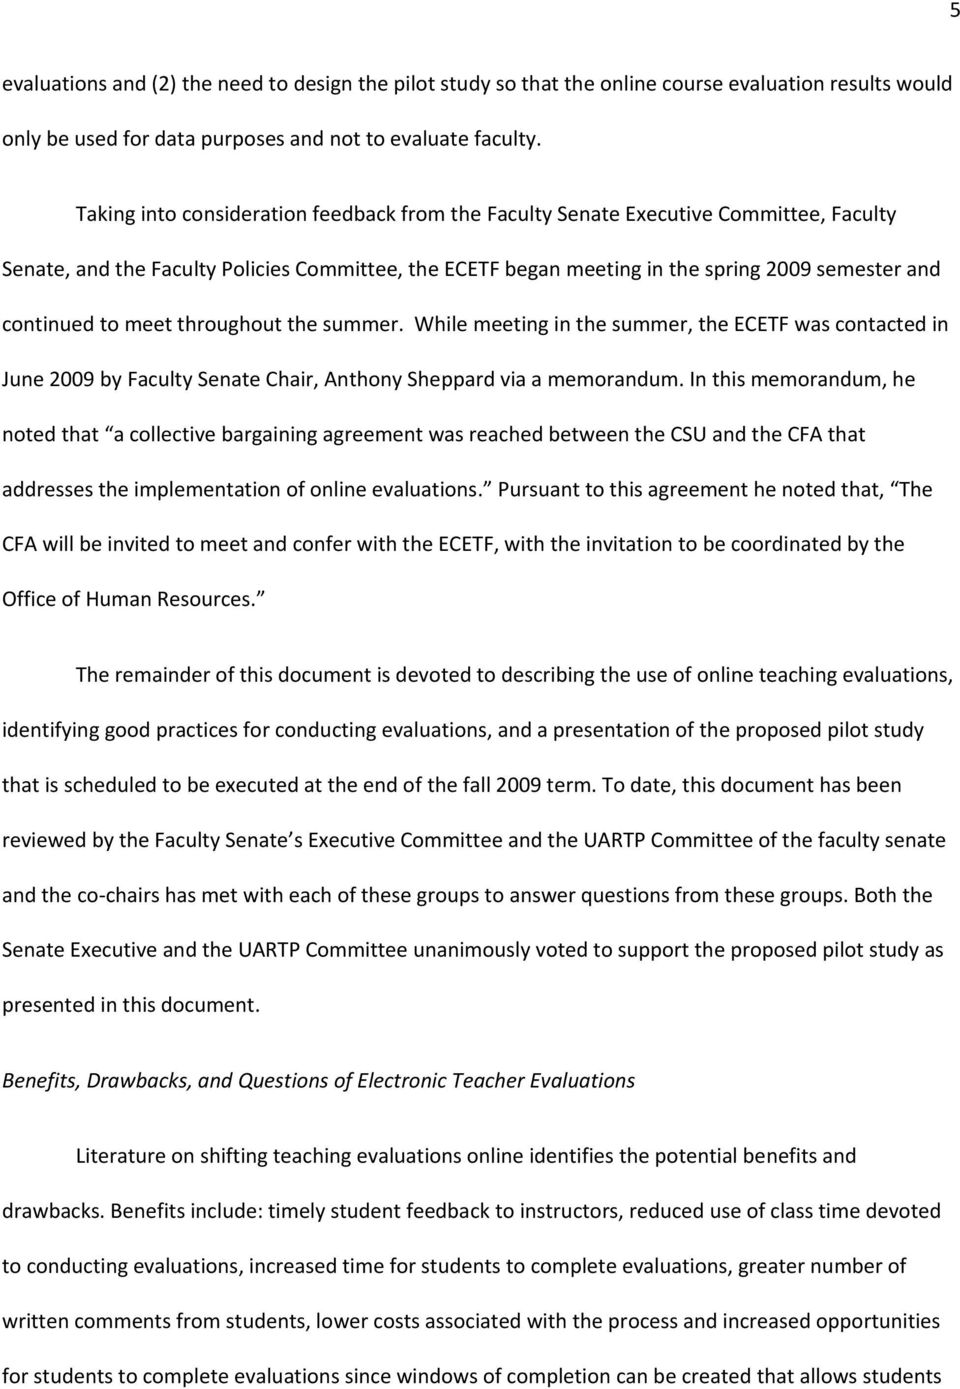 to meet throughout the summer. While meeting in the summer, the ECETF was contacted in June 2009 by Faculty Senate Chair, Anthony Sheppard via a memorandum.